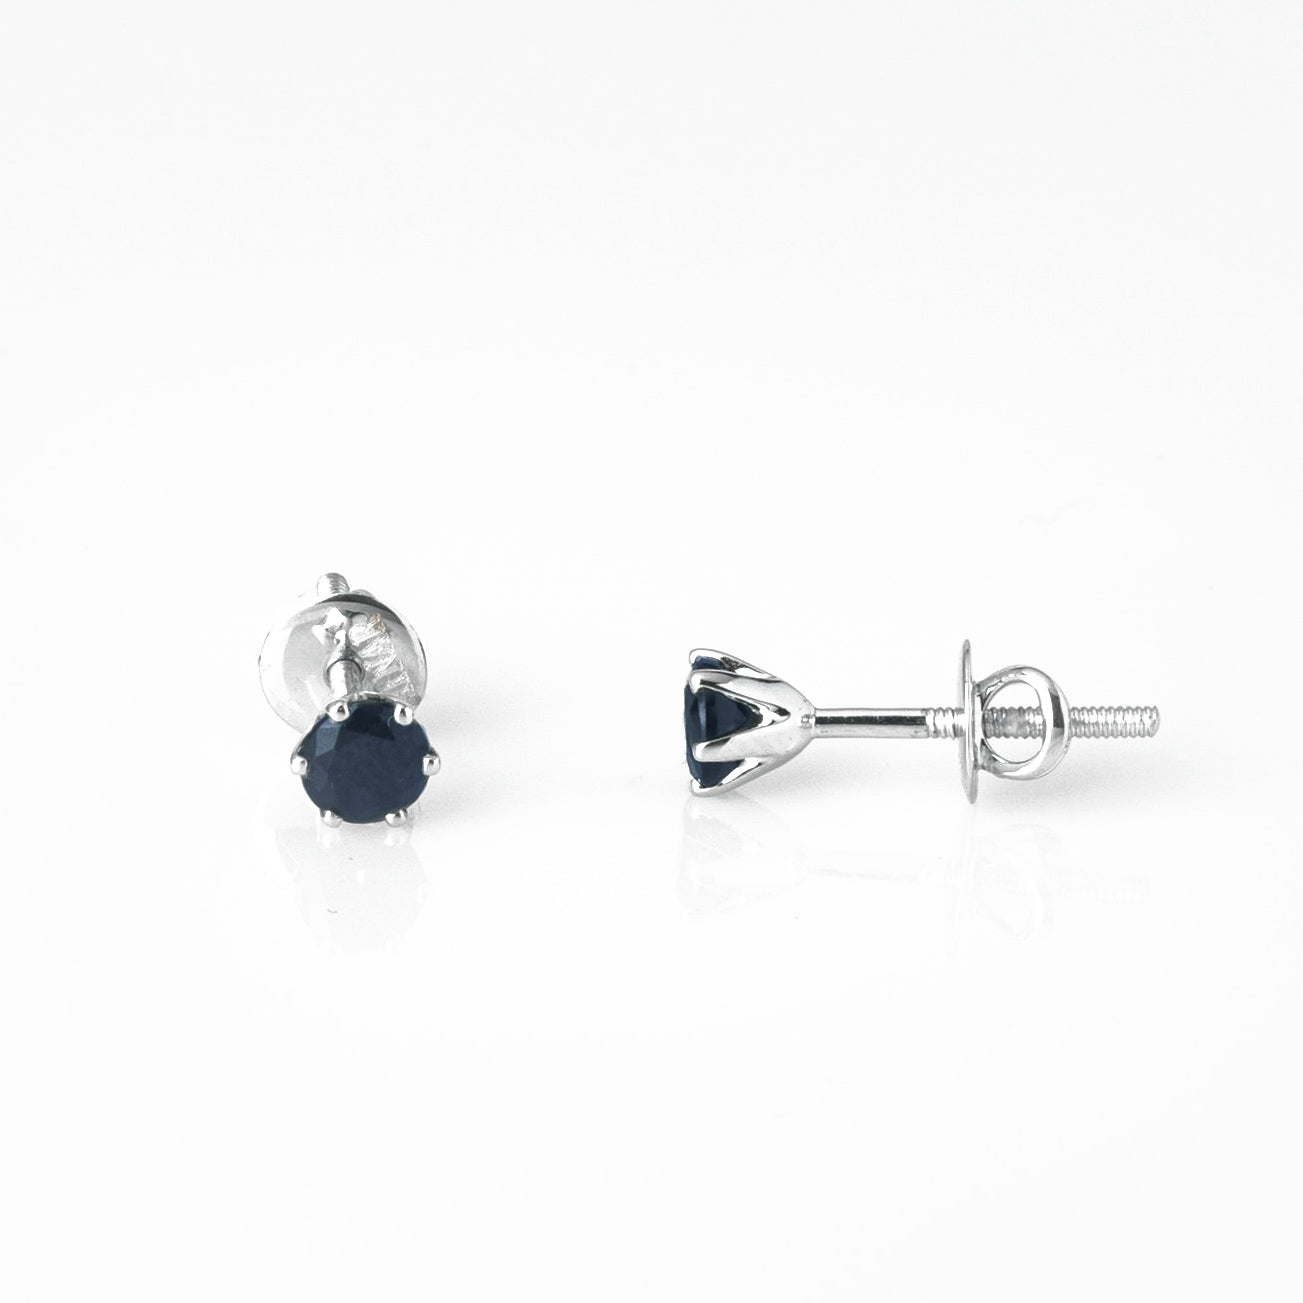 18ct White Gold 0.81ct Round Brilliant Cut Sapphire Stud Earrings (MCS3124)